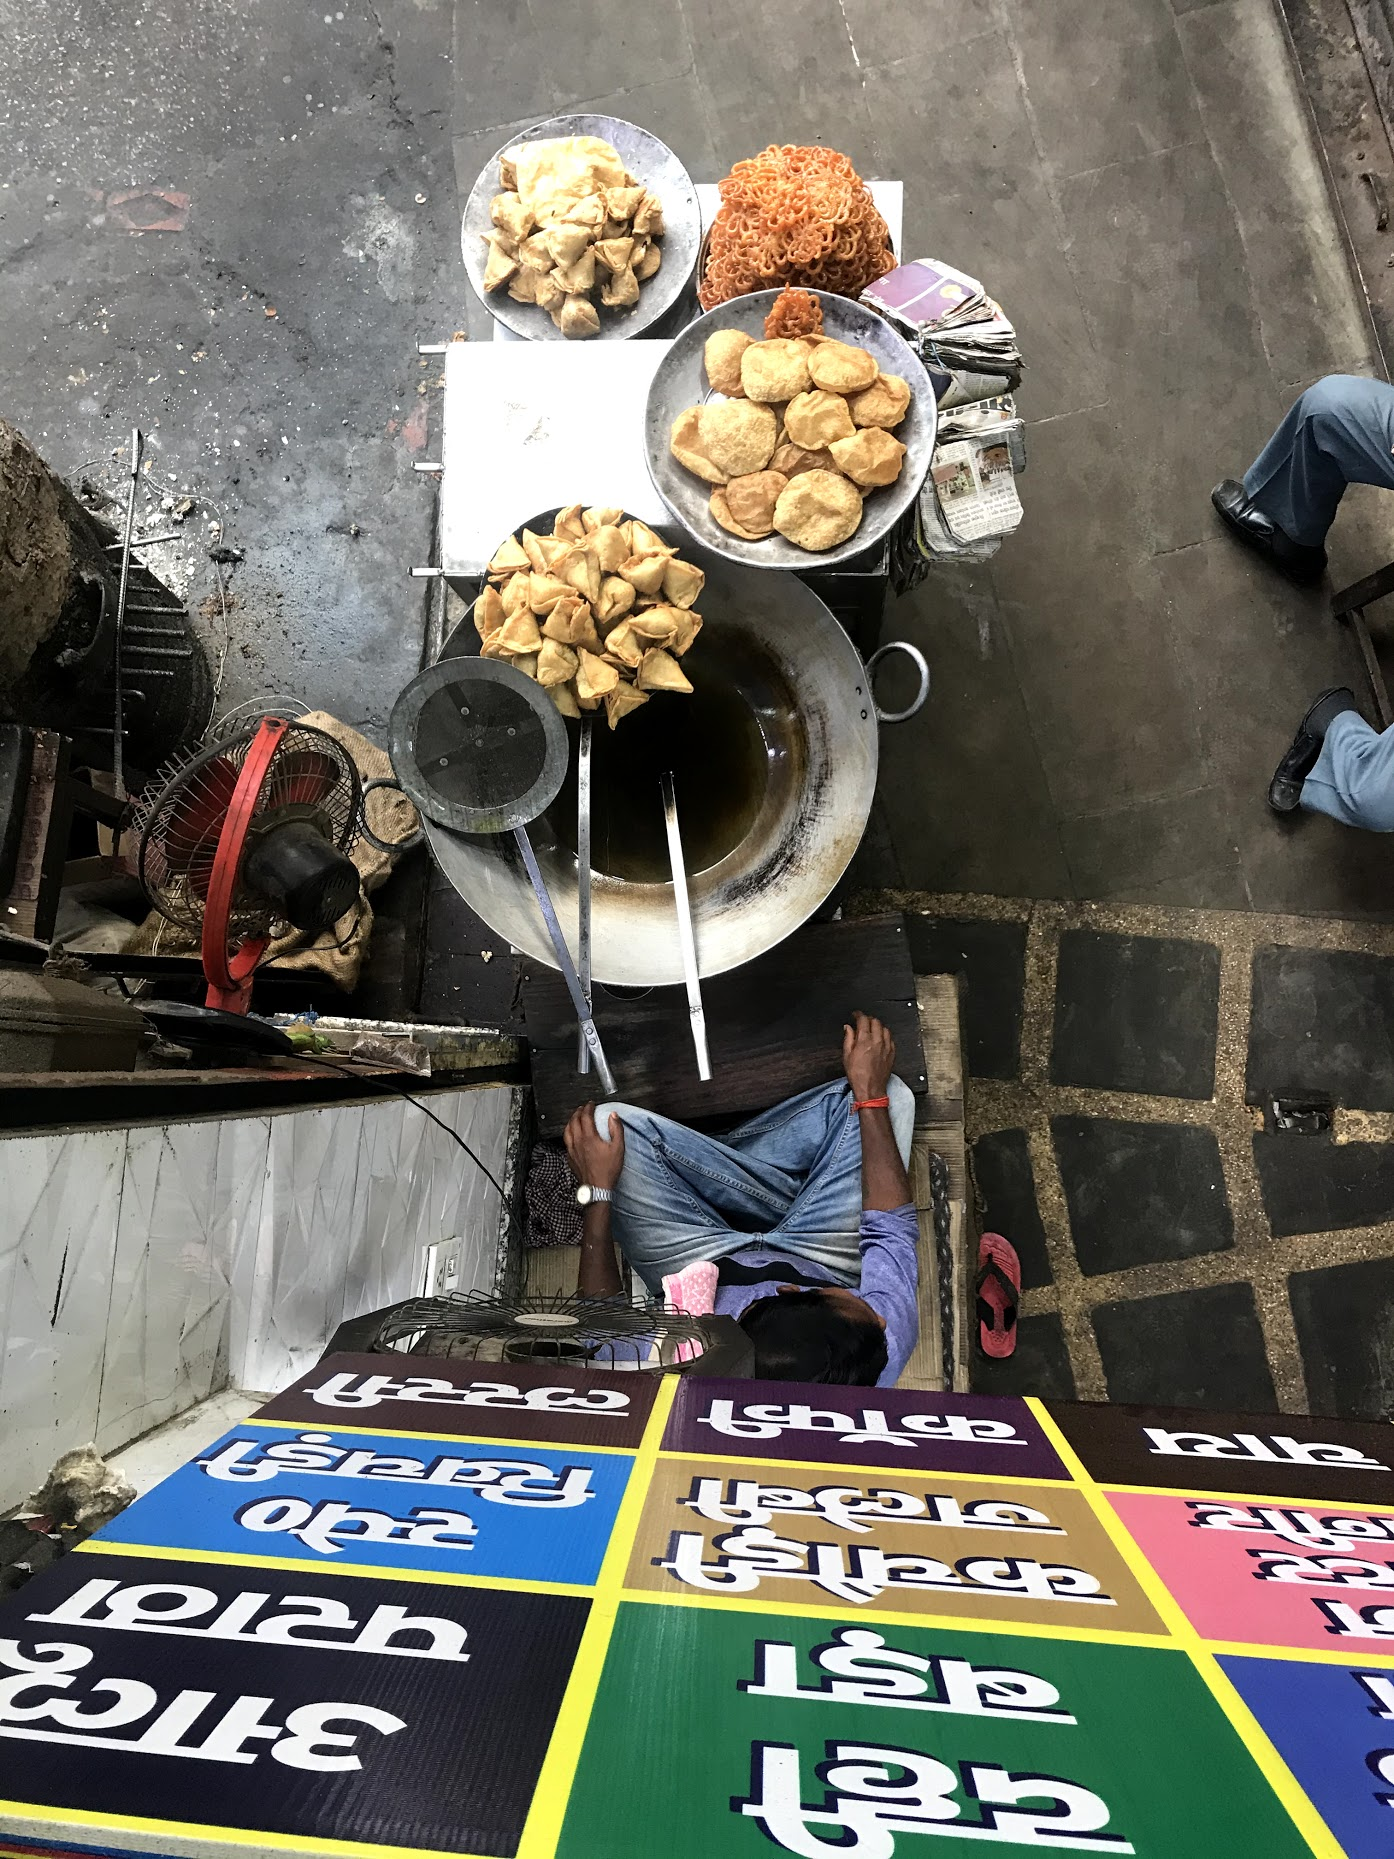 View of street food from above.